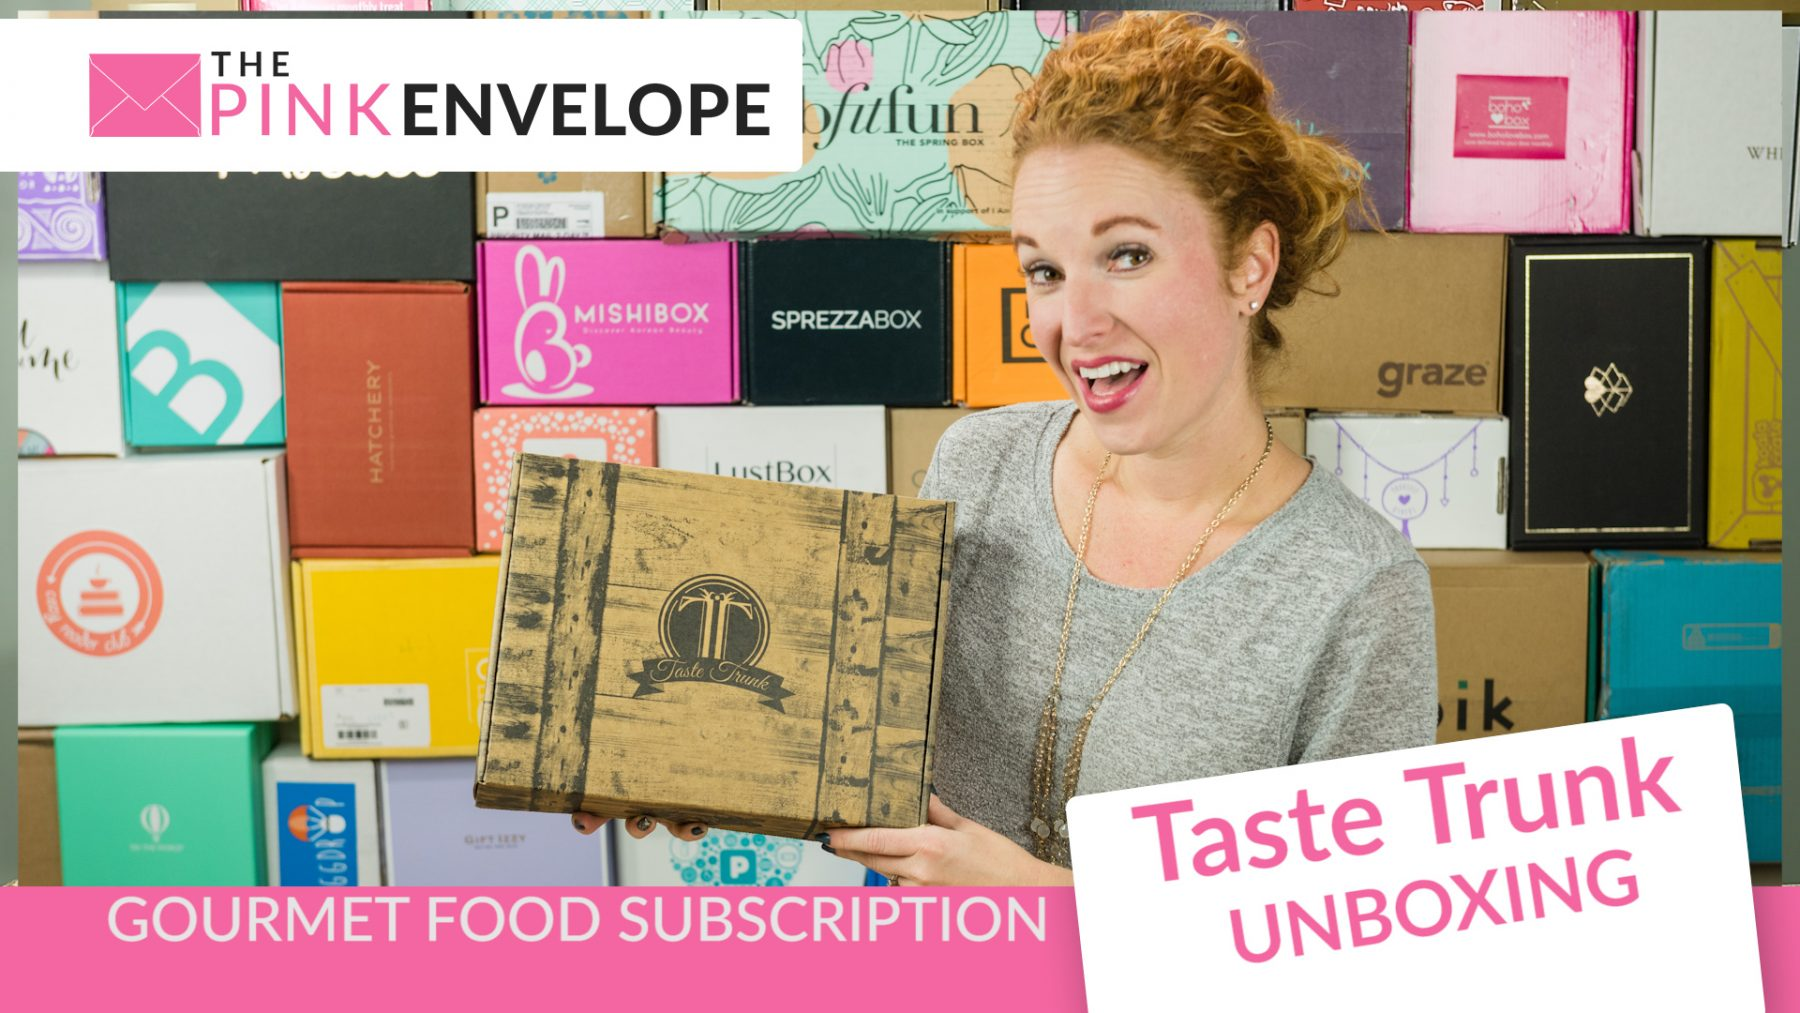 Taste Trunk Review – Unique Gourmet Gift Subscriptions